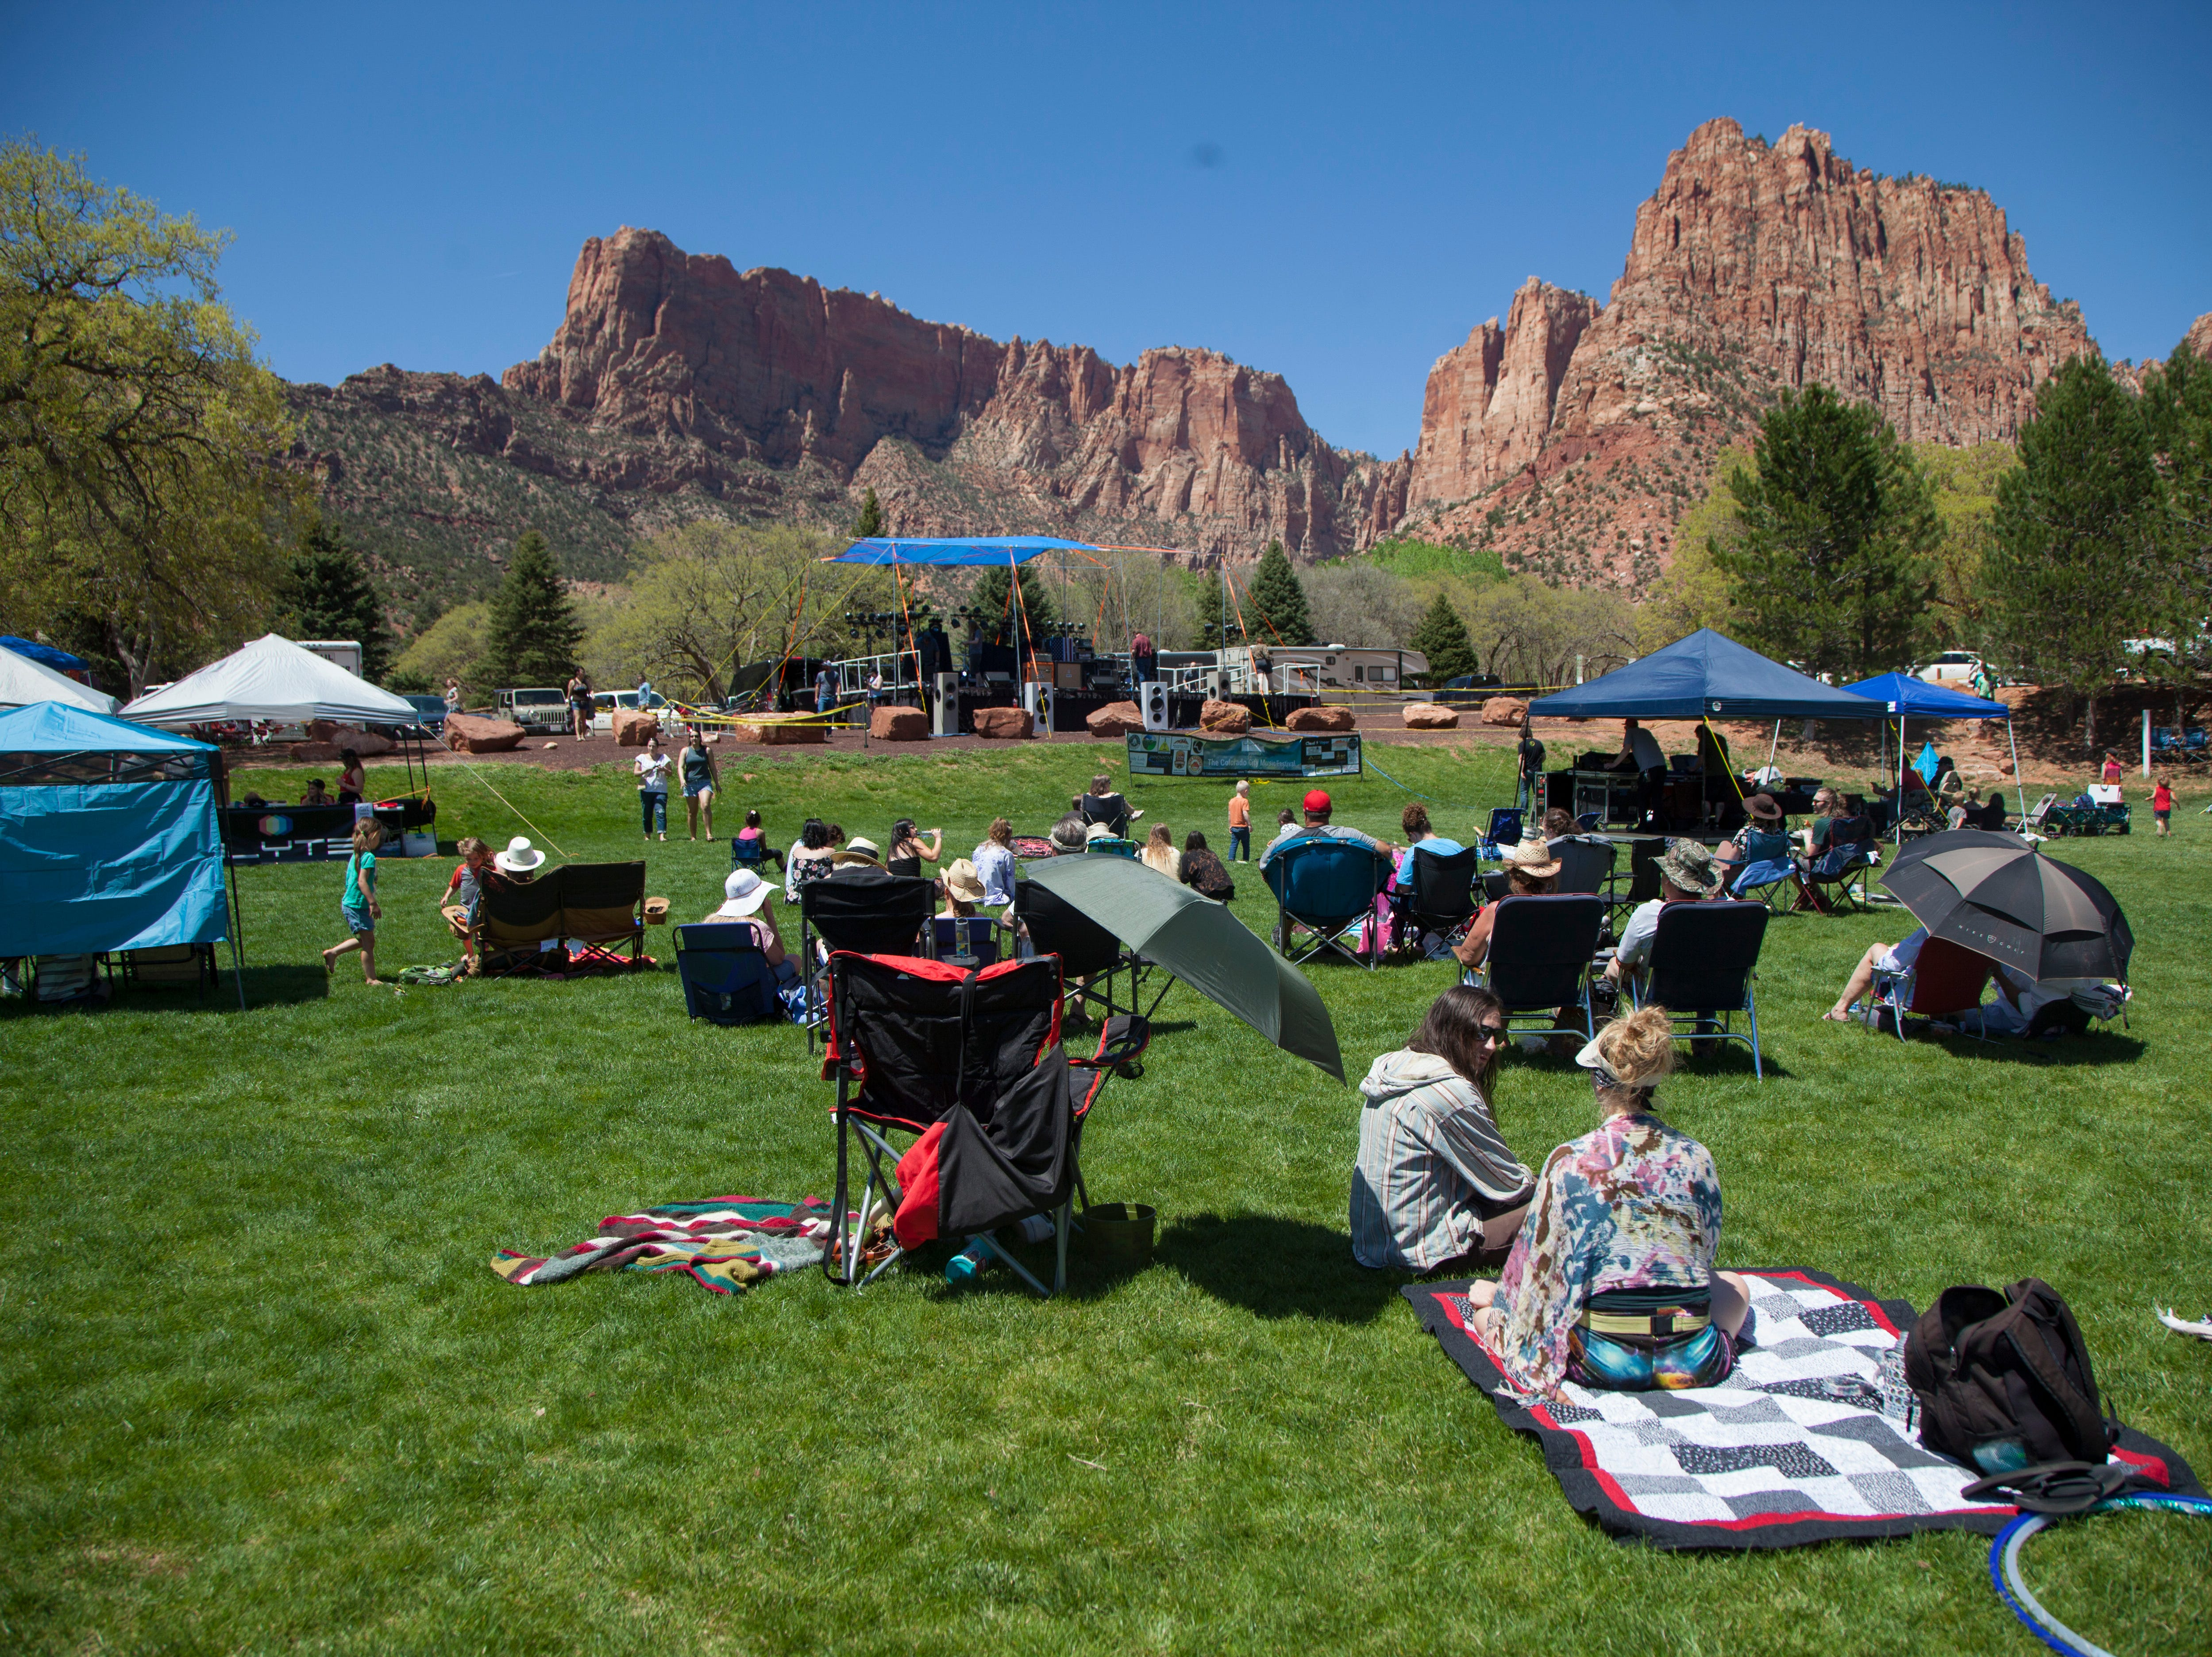 Music fans gather for the third annual Colorado City Music Festival at Maxwell Park in Hildale, Saturday, April 27, 2019.